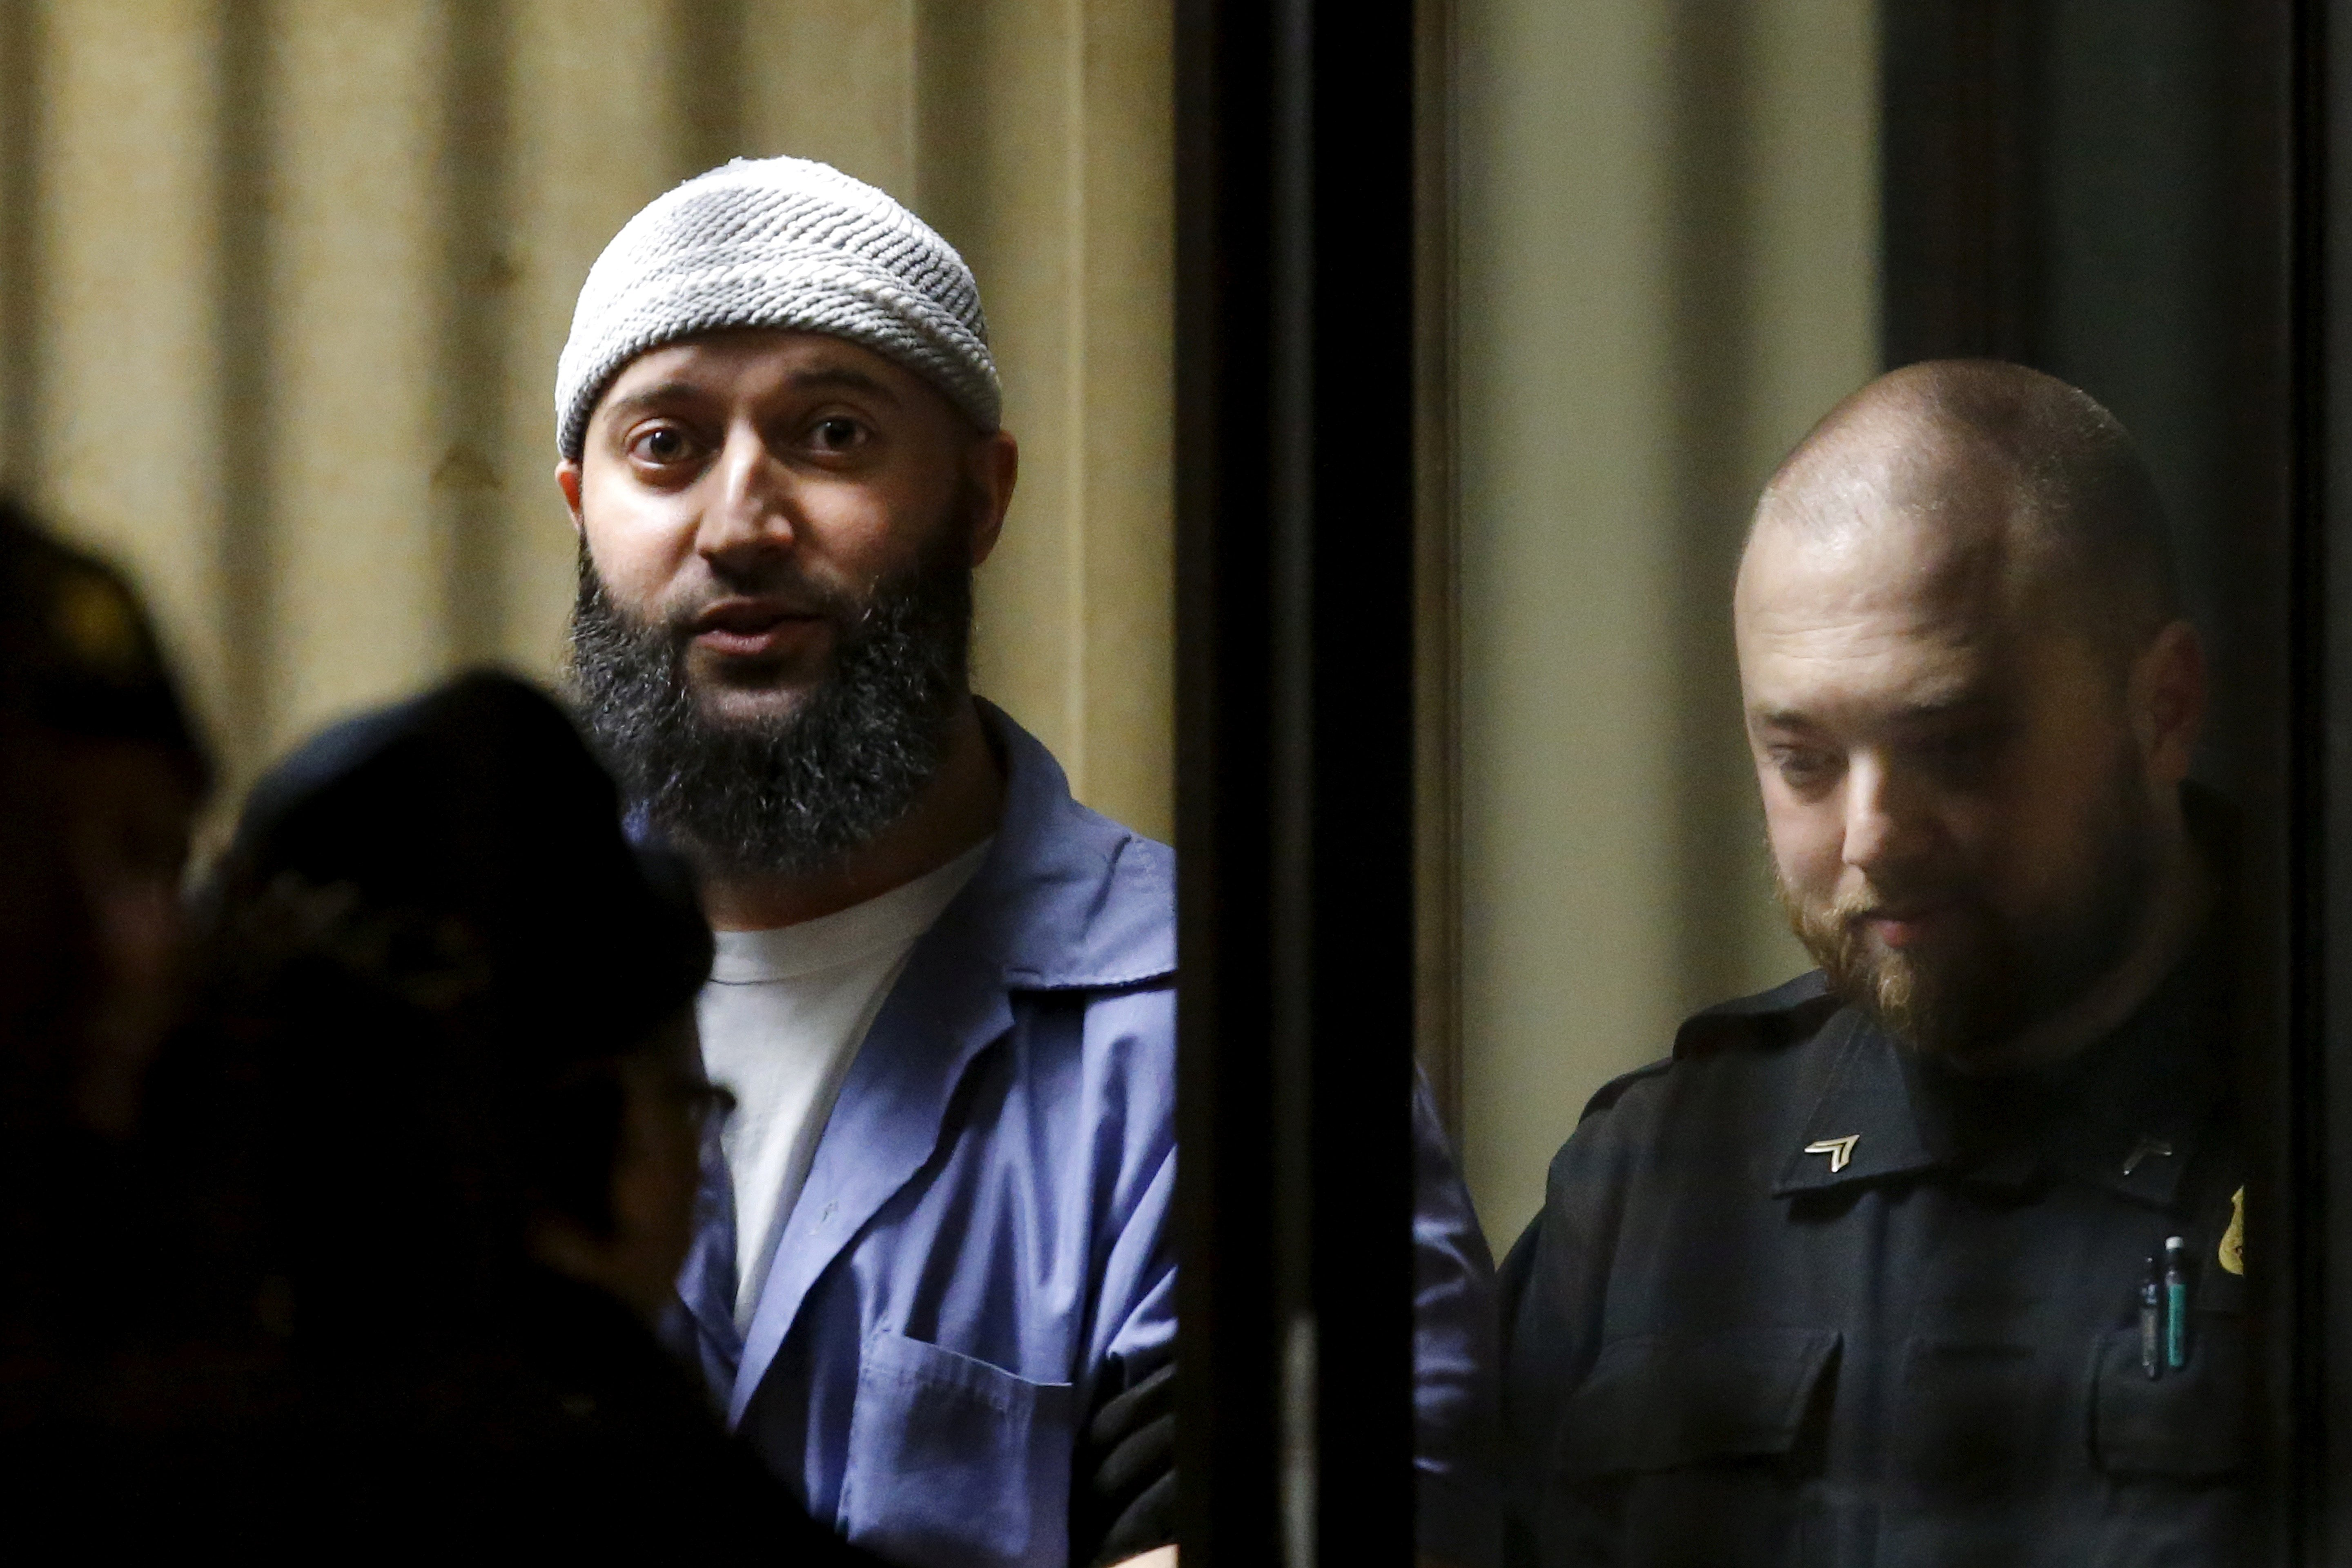 Convicted murderer Adnan Syed leaves the Baltimore City Circuit Courthouse on February 5, 2016. (Reuters/Carlos Barria)